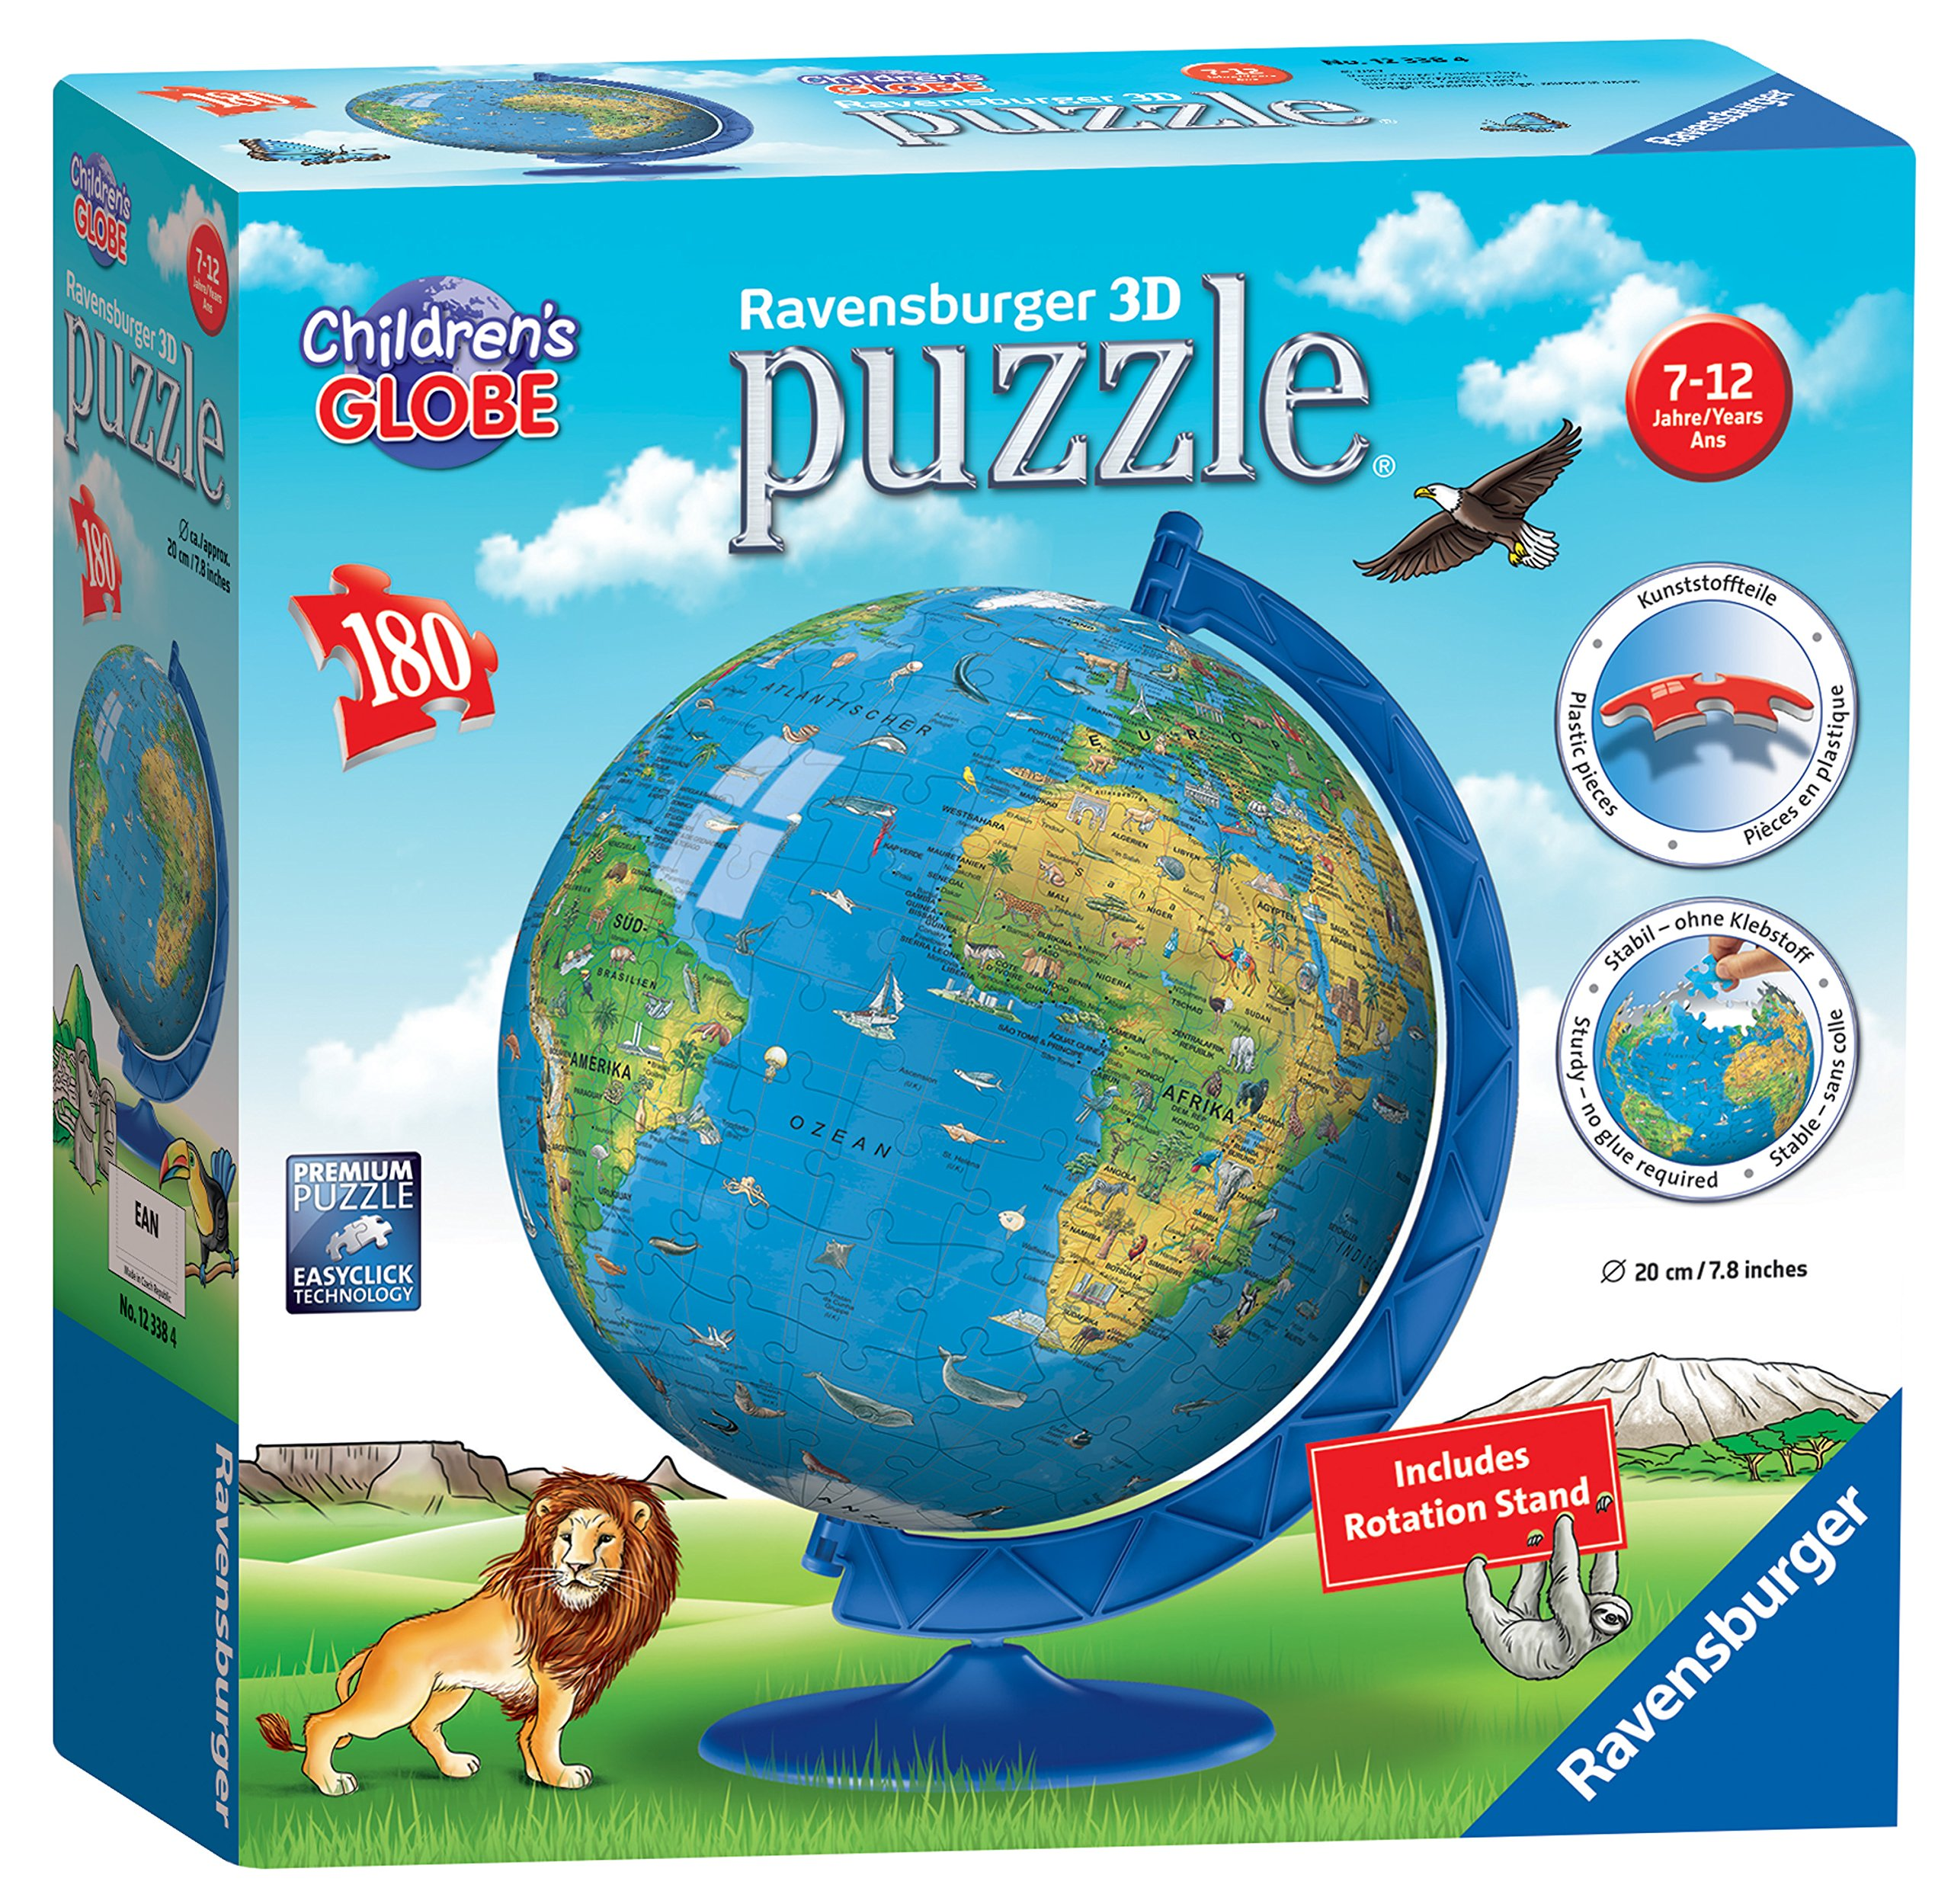 Ravensburger Children's World Globe 180 Piece 3D Jigsaw Puzzle for Kids and Adults - Easy Click Technology Means Pieces Fit Together Perfectly by Ravensburger